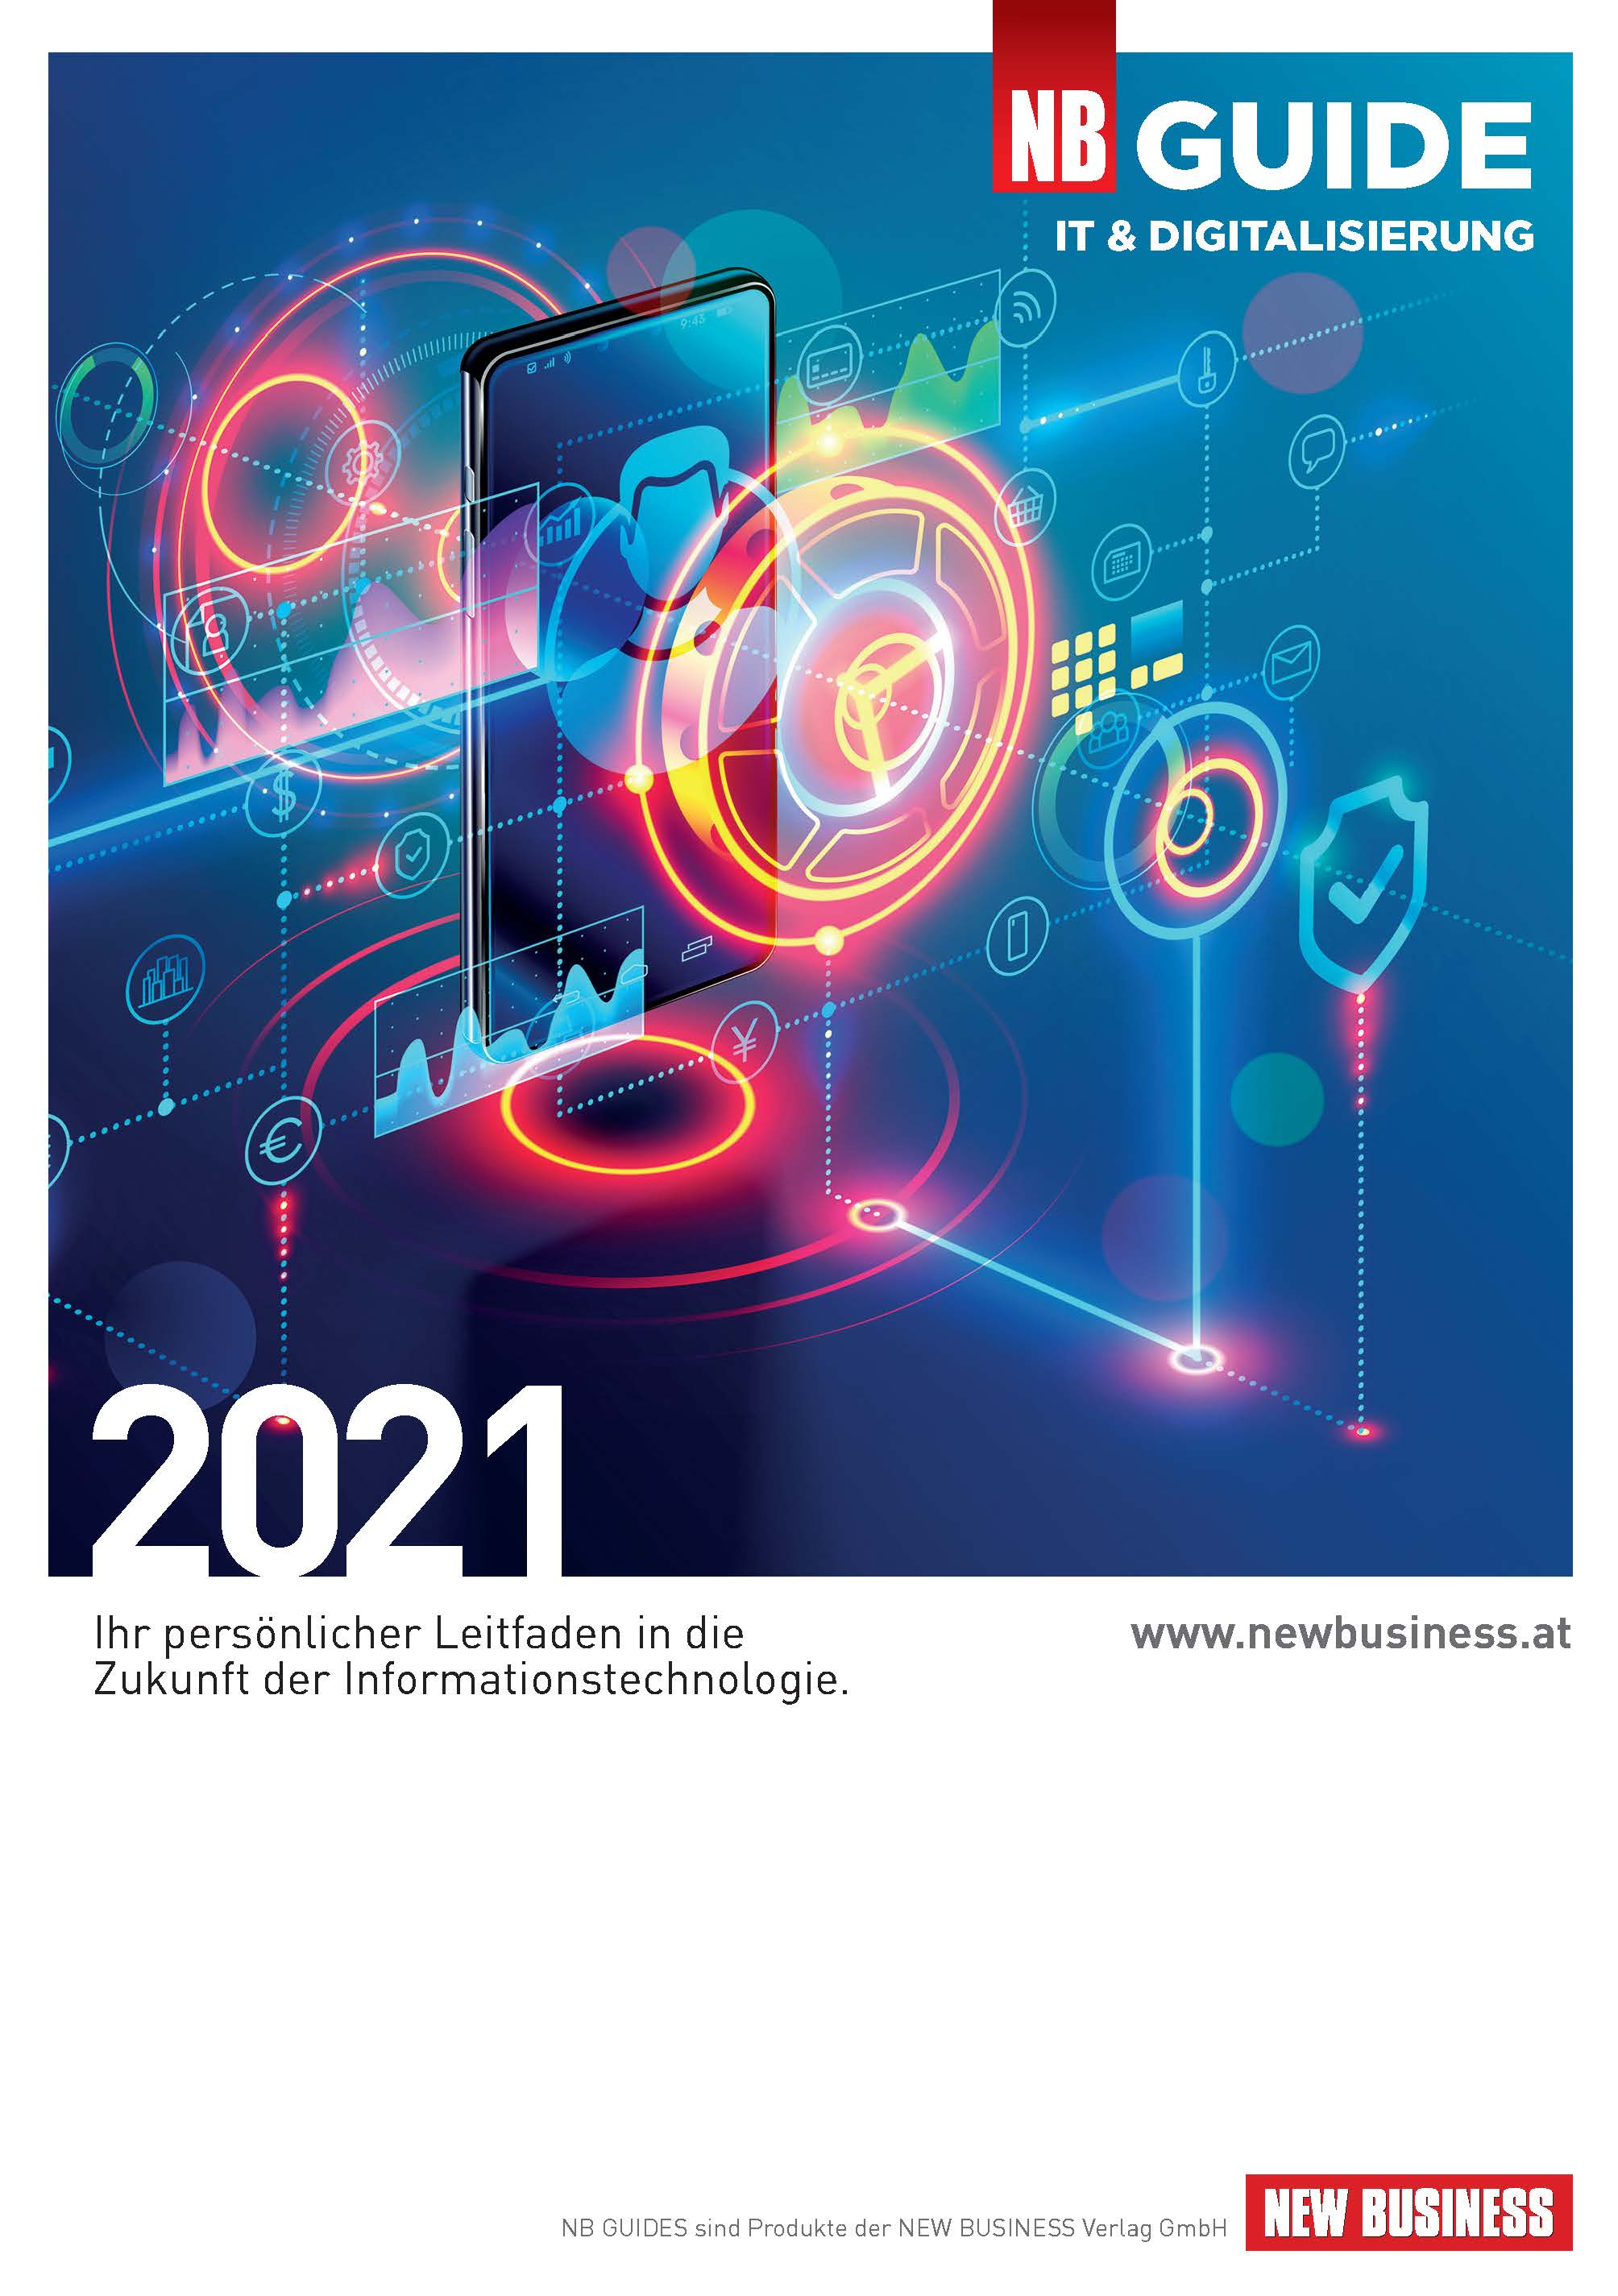 Cover: NEW BUSINESS Guides - IT- & DIGITALISIERUNGS-GUIDE 2021